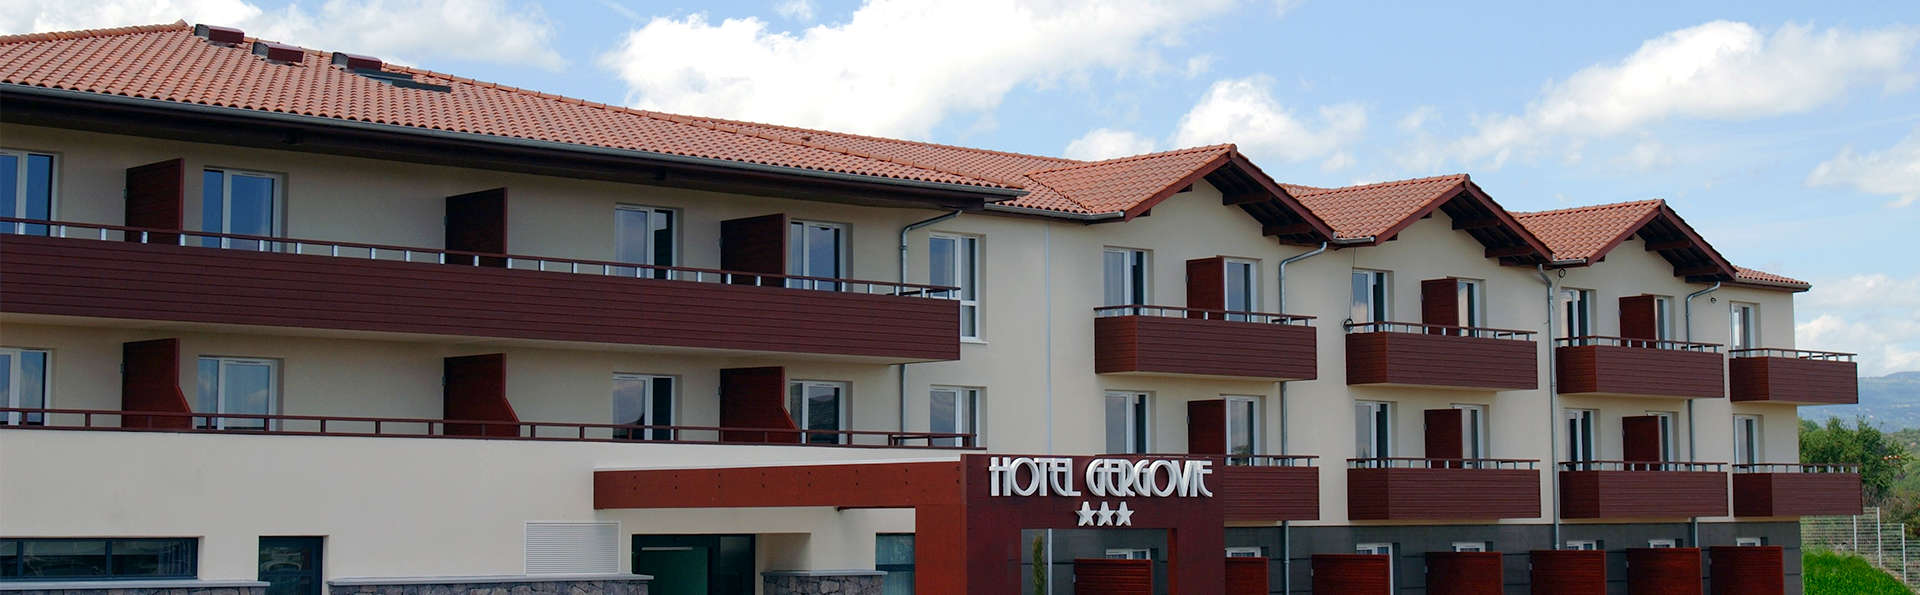 Best Western PLUS Hôtel Gergovie - EDIT_Exterior.jpg